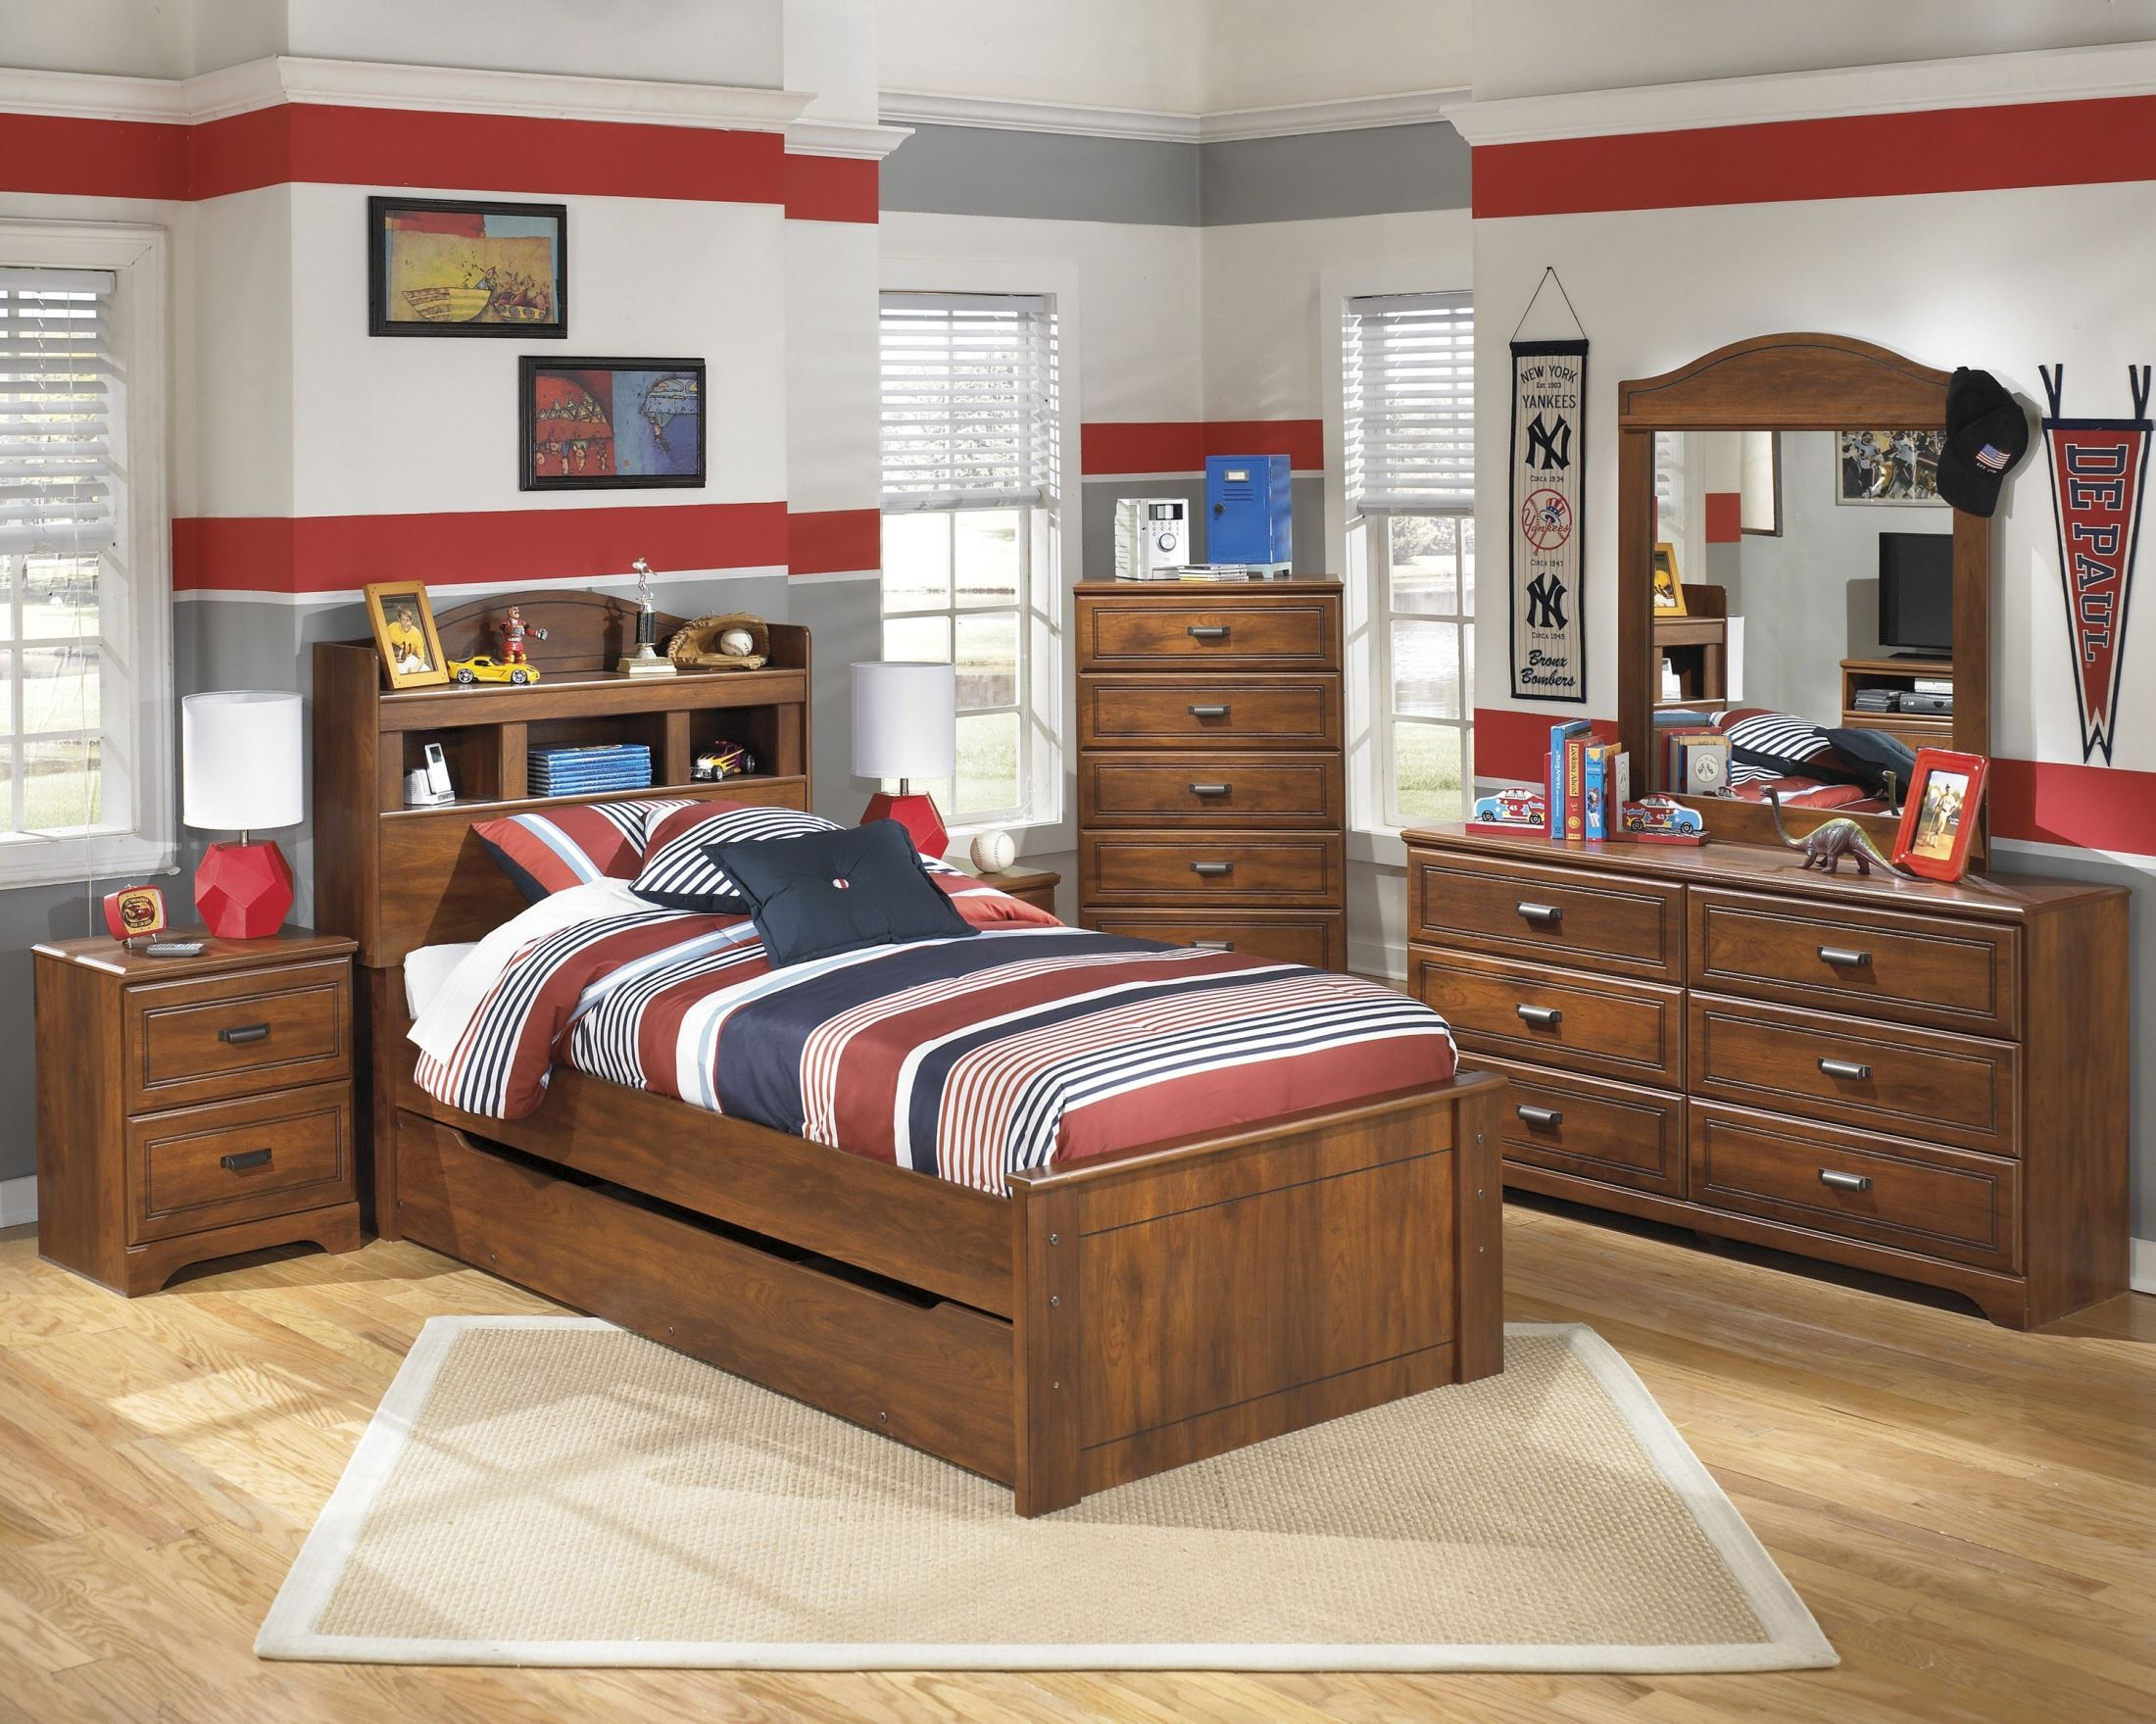 Barchan youth trundle bookcase bedroom set b228 63 52 82 60 b100 11 ashley for Youth storage bedroom furniture